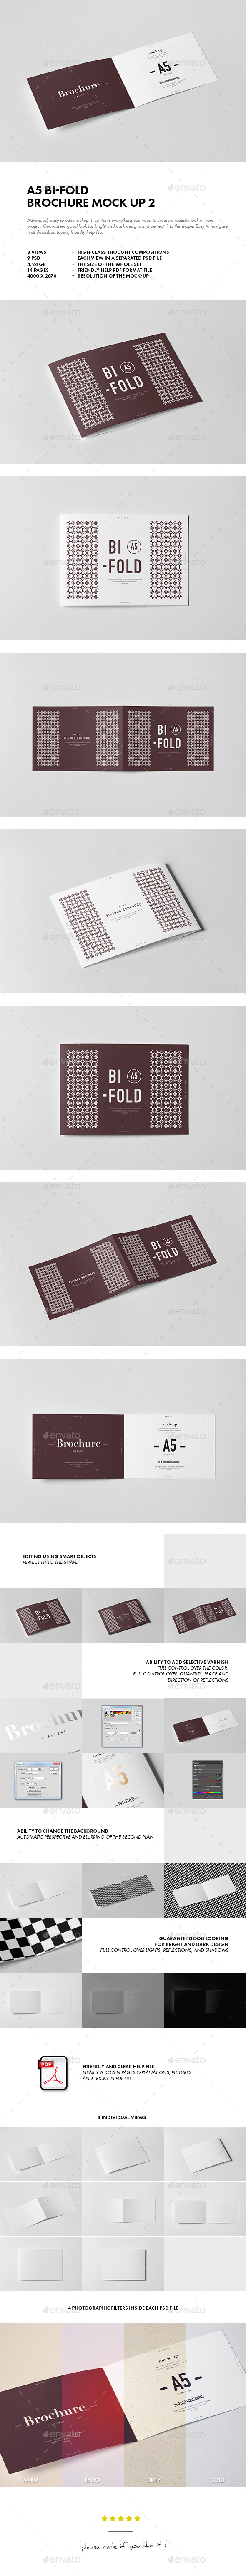 Bi-Fold A5 Horizontal Brochure Mock-up 2 - Brochures Print